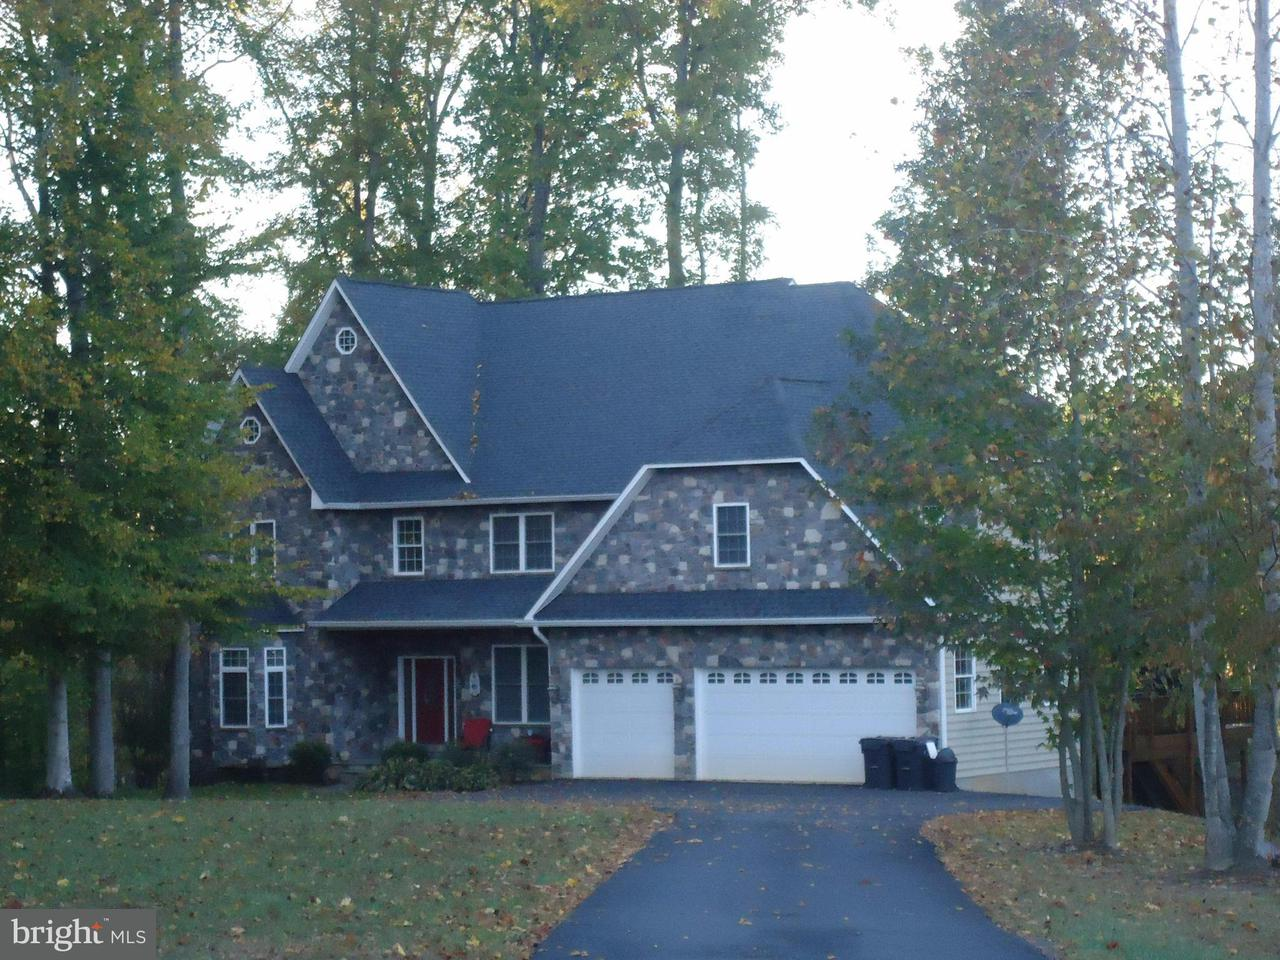 Single Family Home for Sale at 1915 LAKE FOREST Drive 1915 LAKE FOREST Drive Mineral, Virginia 23117 United States